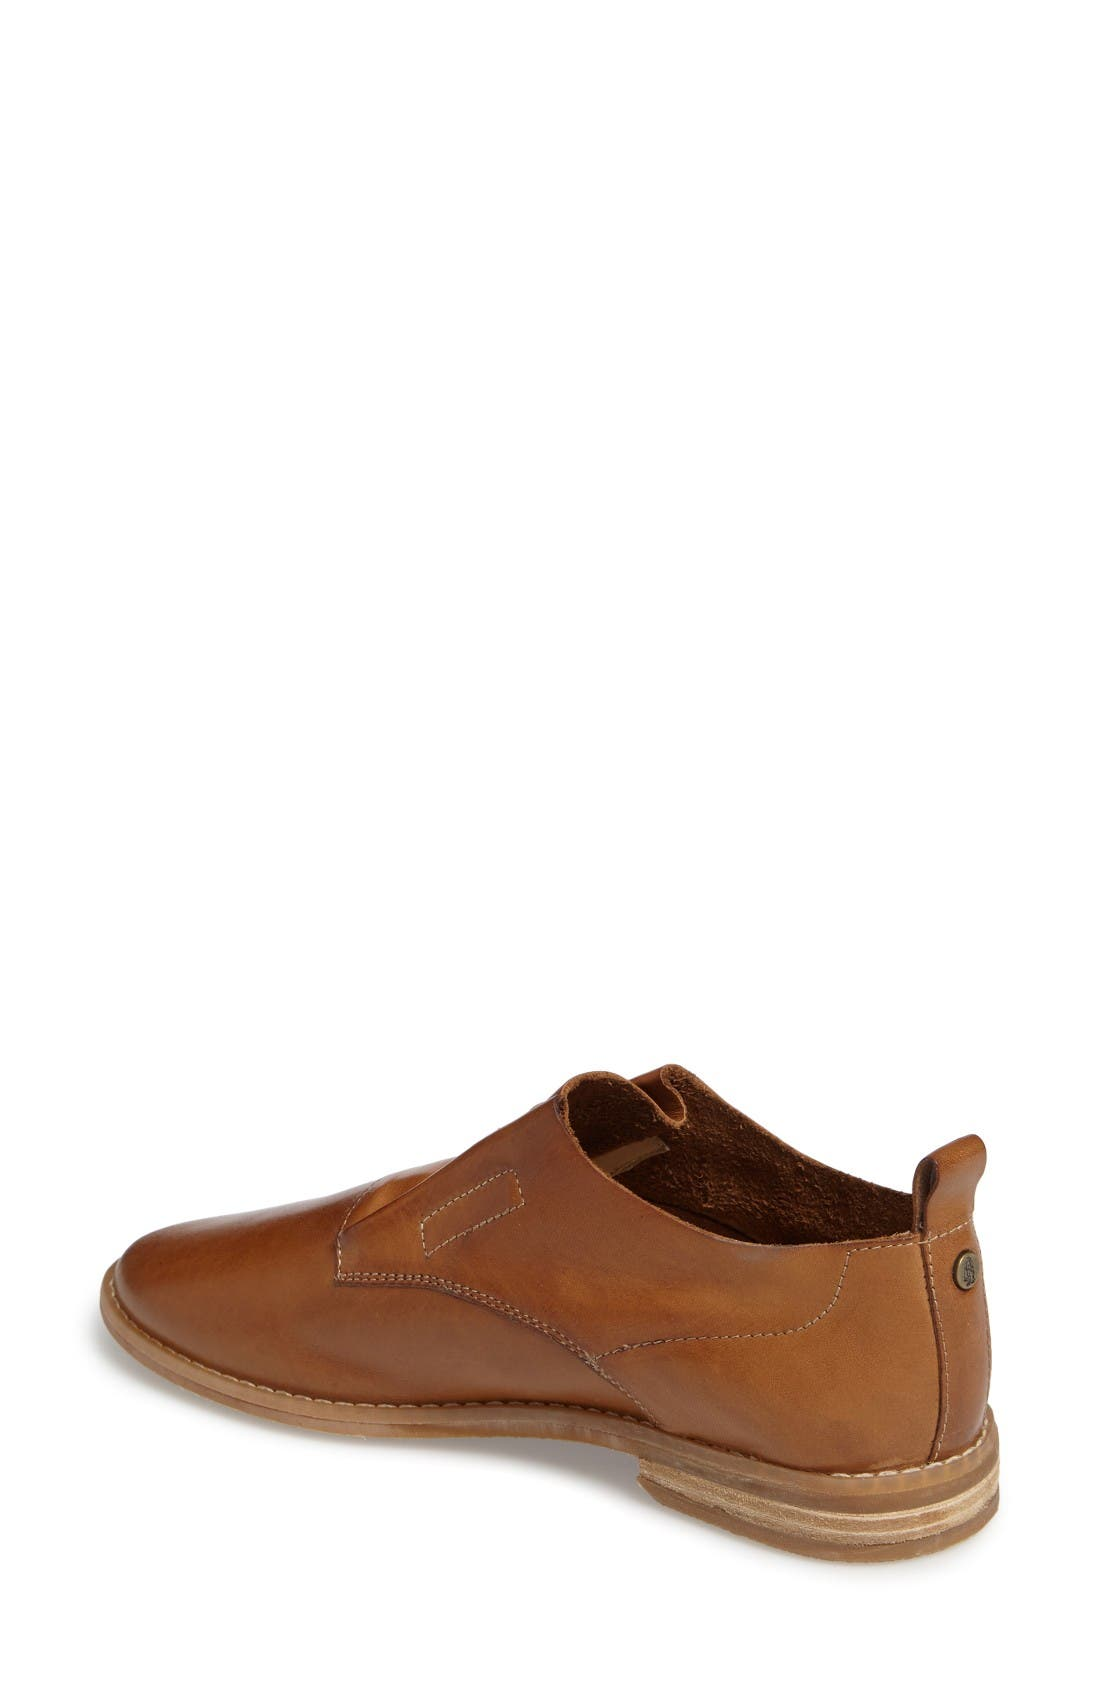 Alternate Image 2  - Hush Puppies® Annerly Clever Flat (Women)